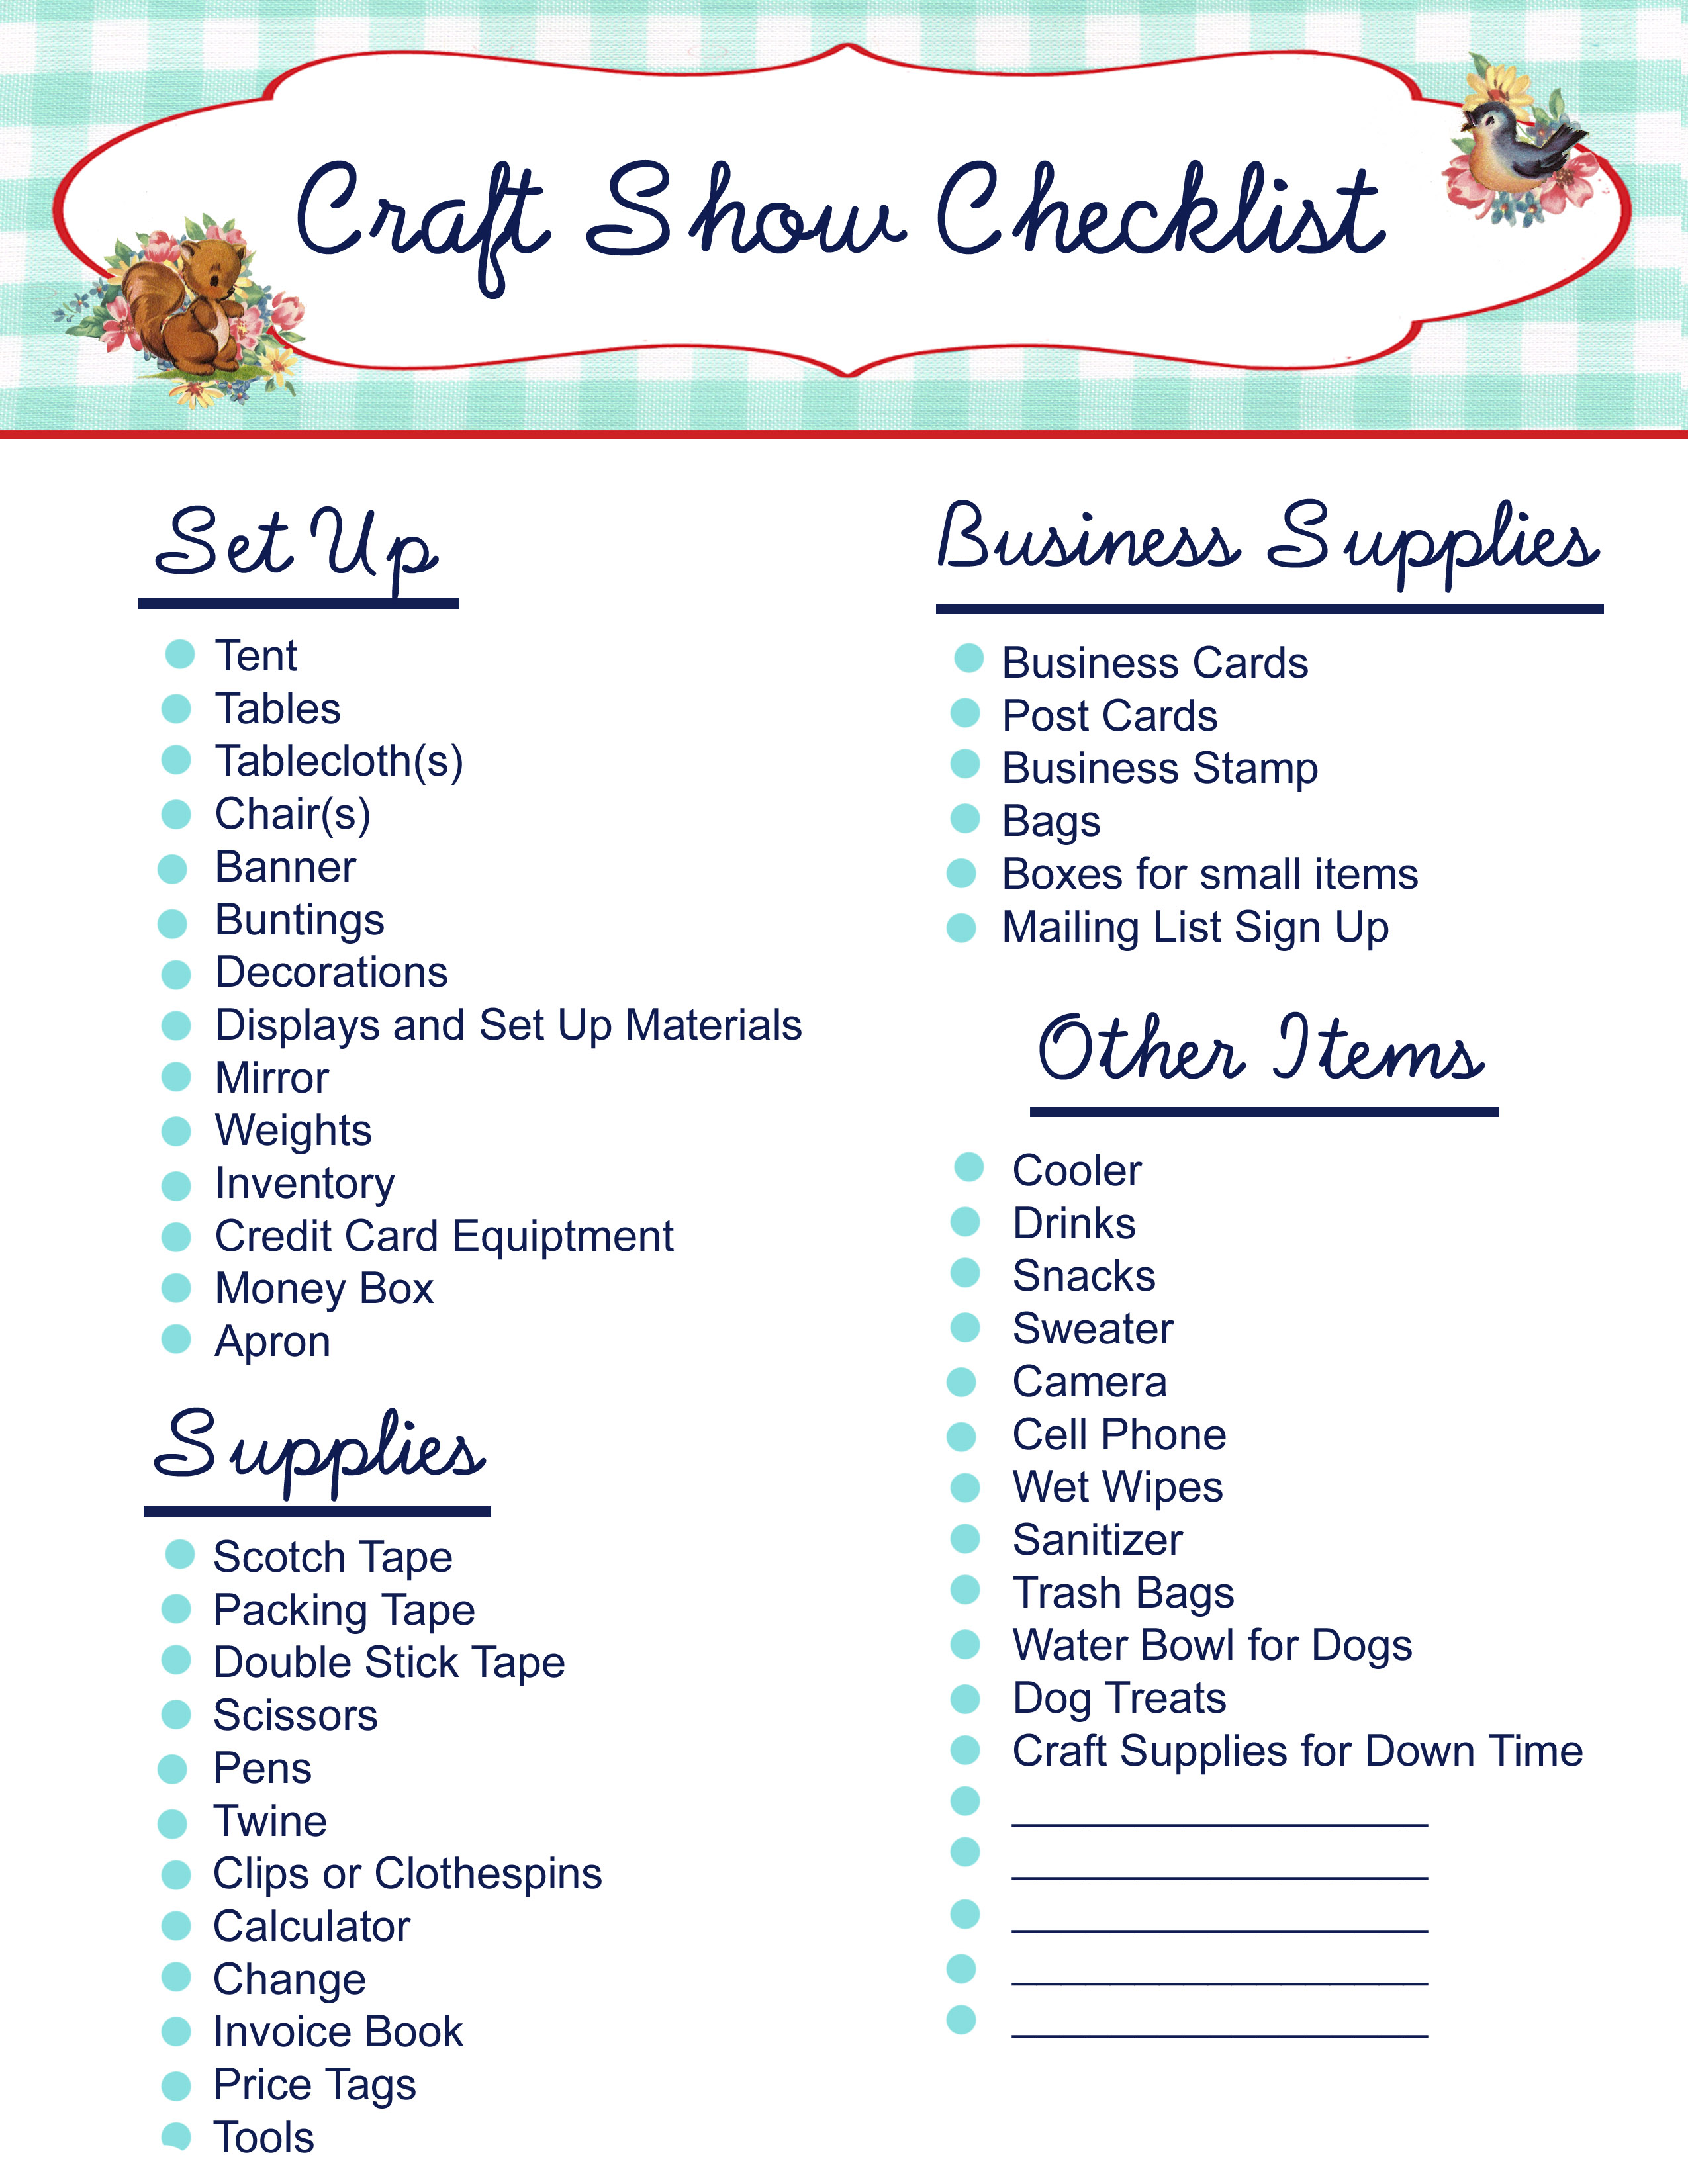 craft show checklist copy Free Printable  Craft Show Checklist